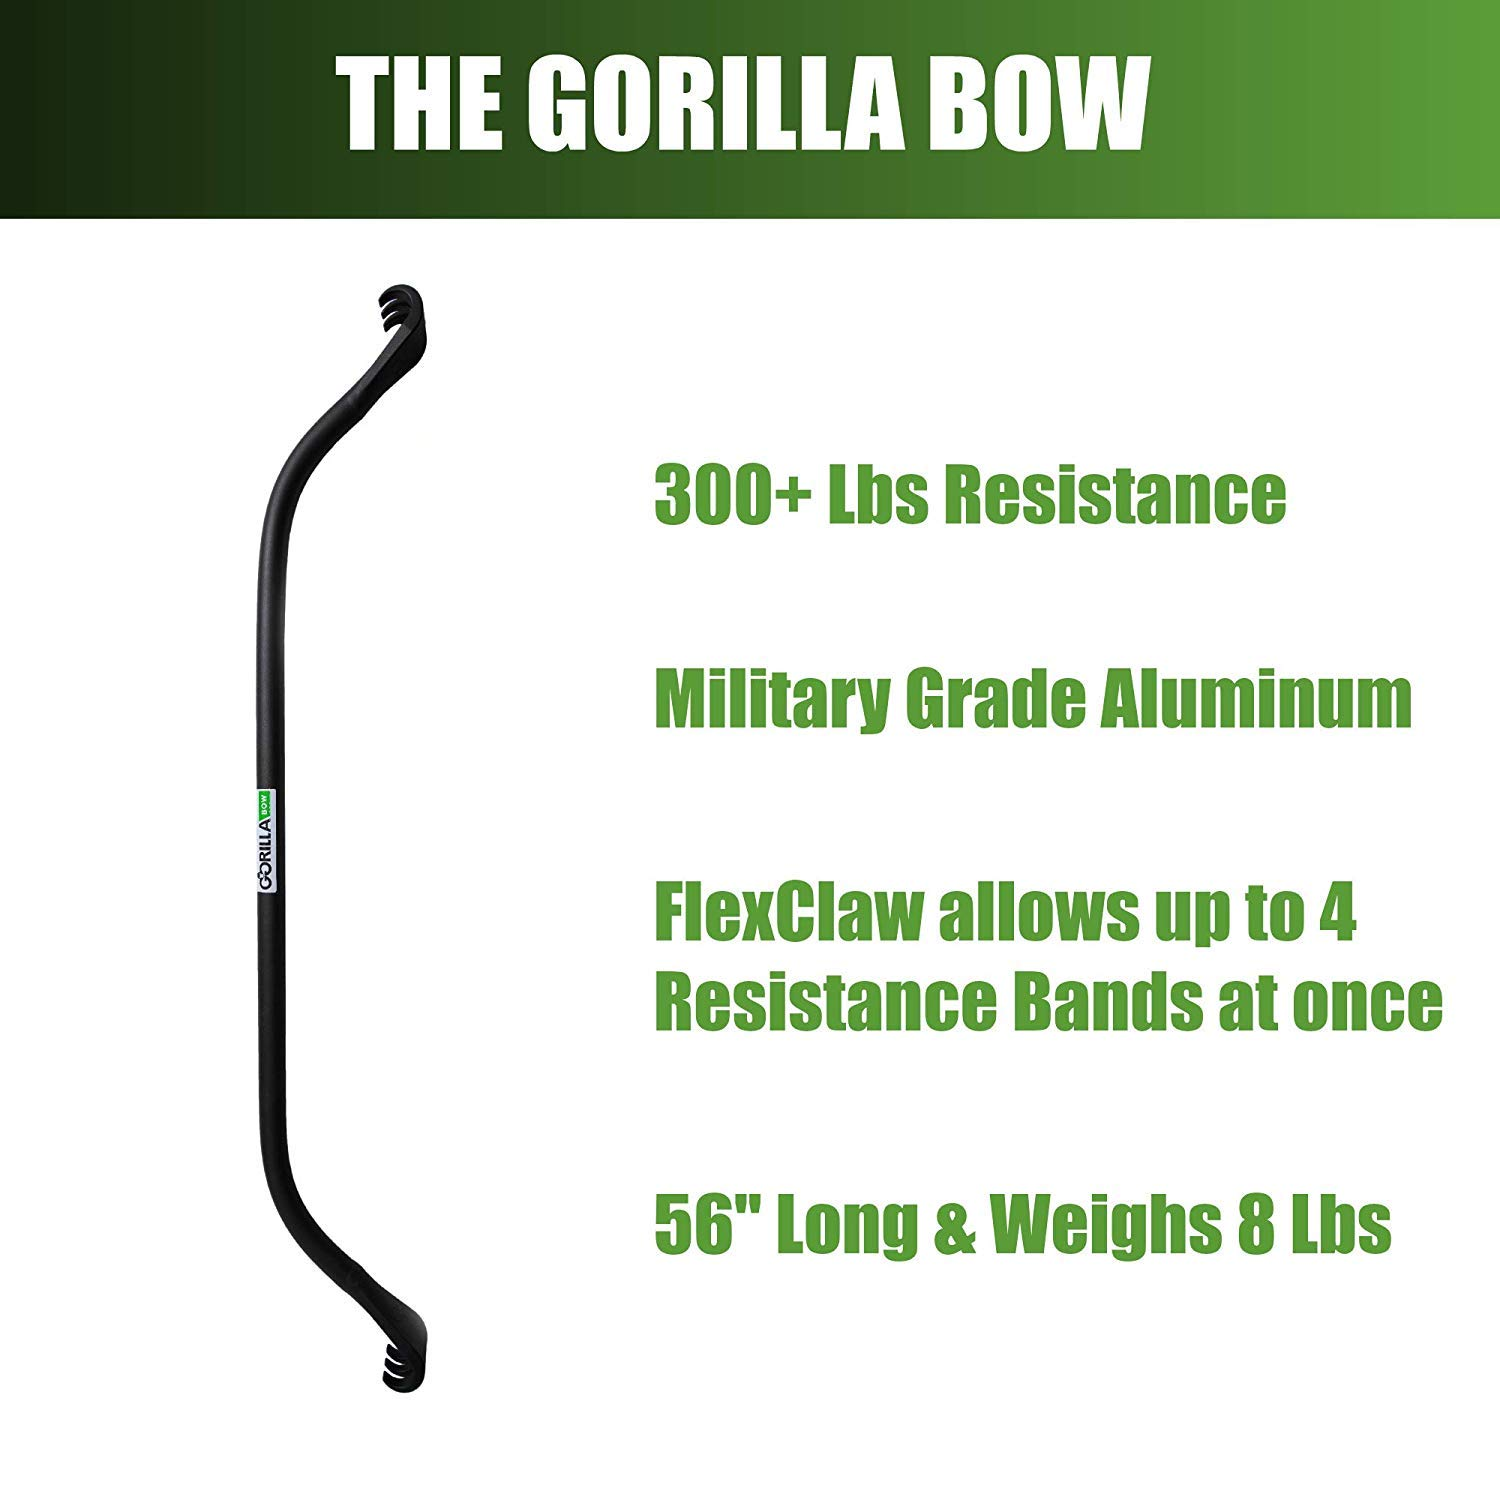 Gorilla Bow Portable Home Gym Resistance Band System - Heavy Set | Weightlifting & HIIT Interval Training Kit | Full Body Workout Equipment (Heavy Set - Black) by Gorilla Fitness (Image #4)